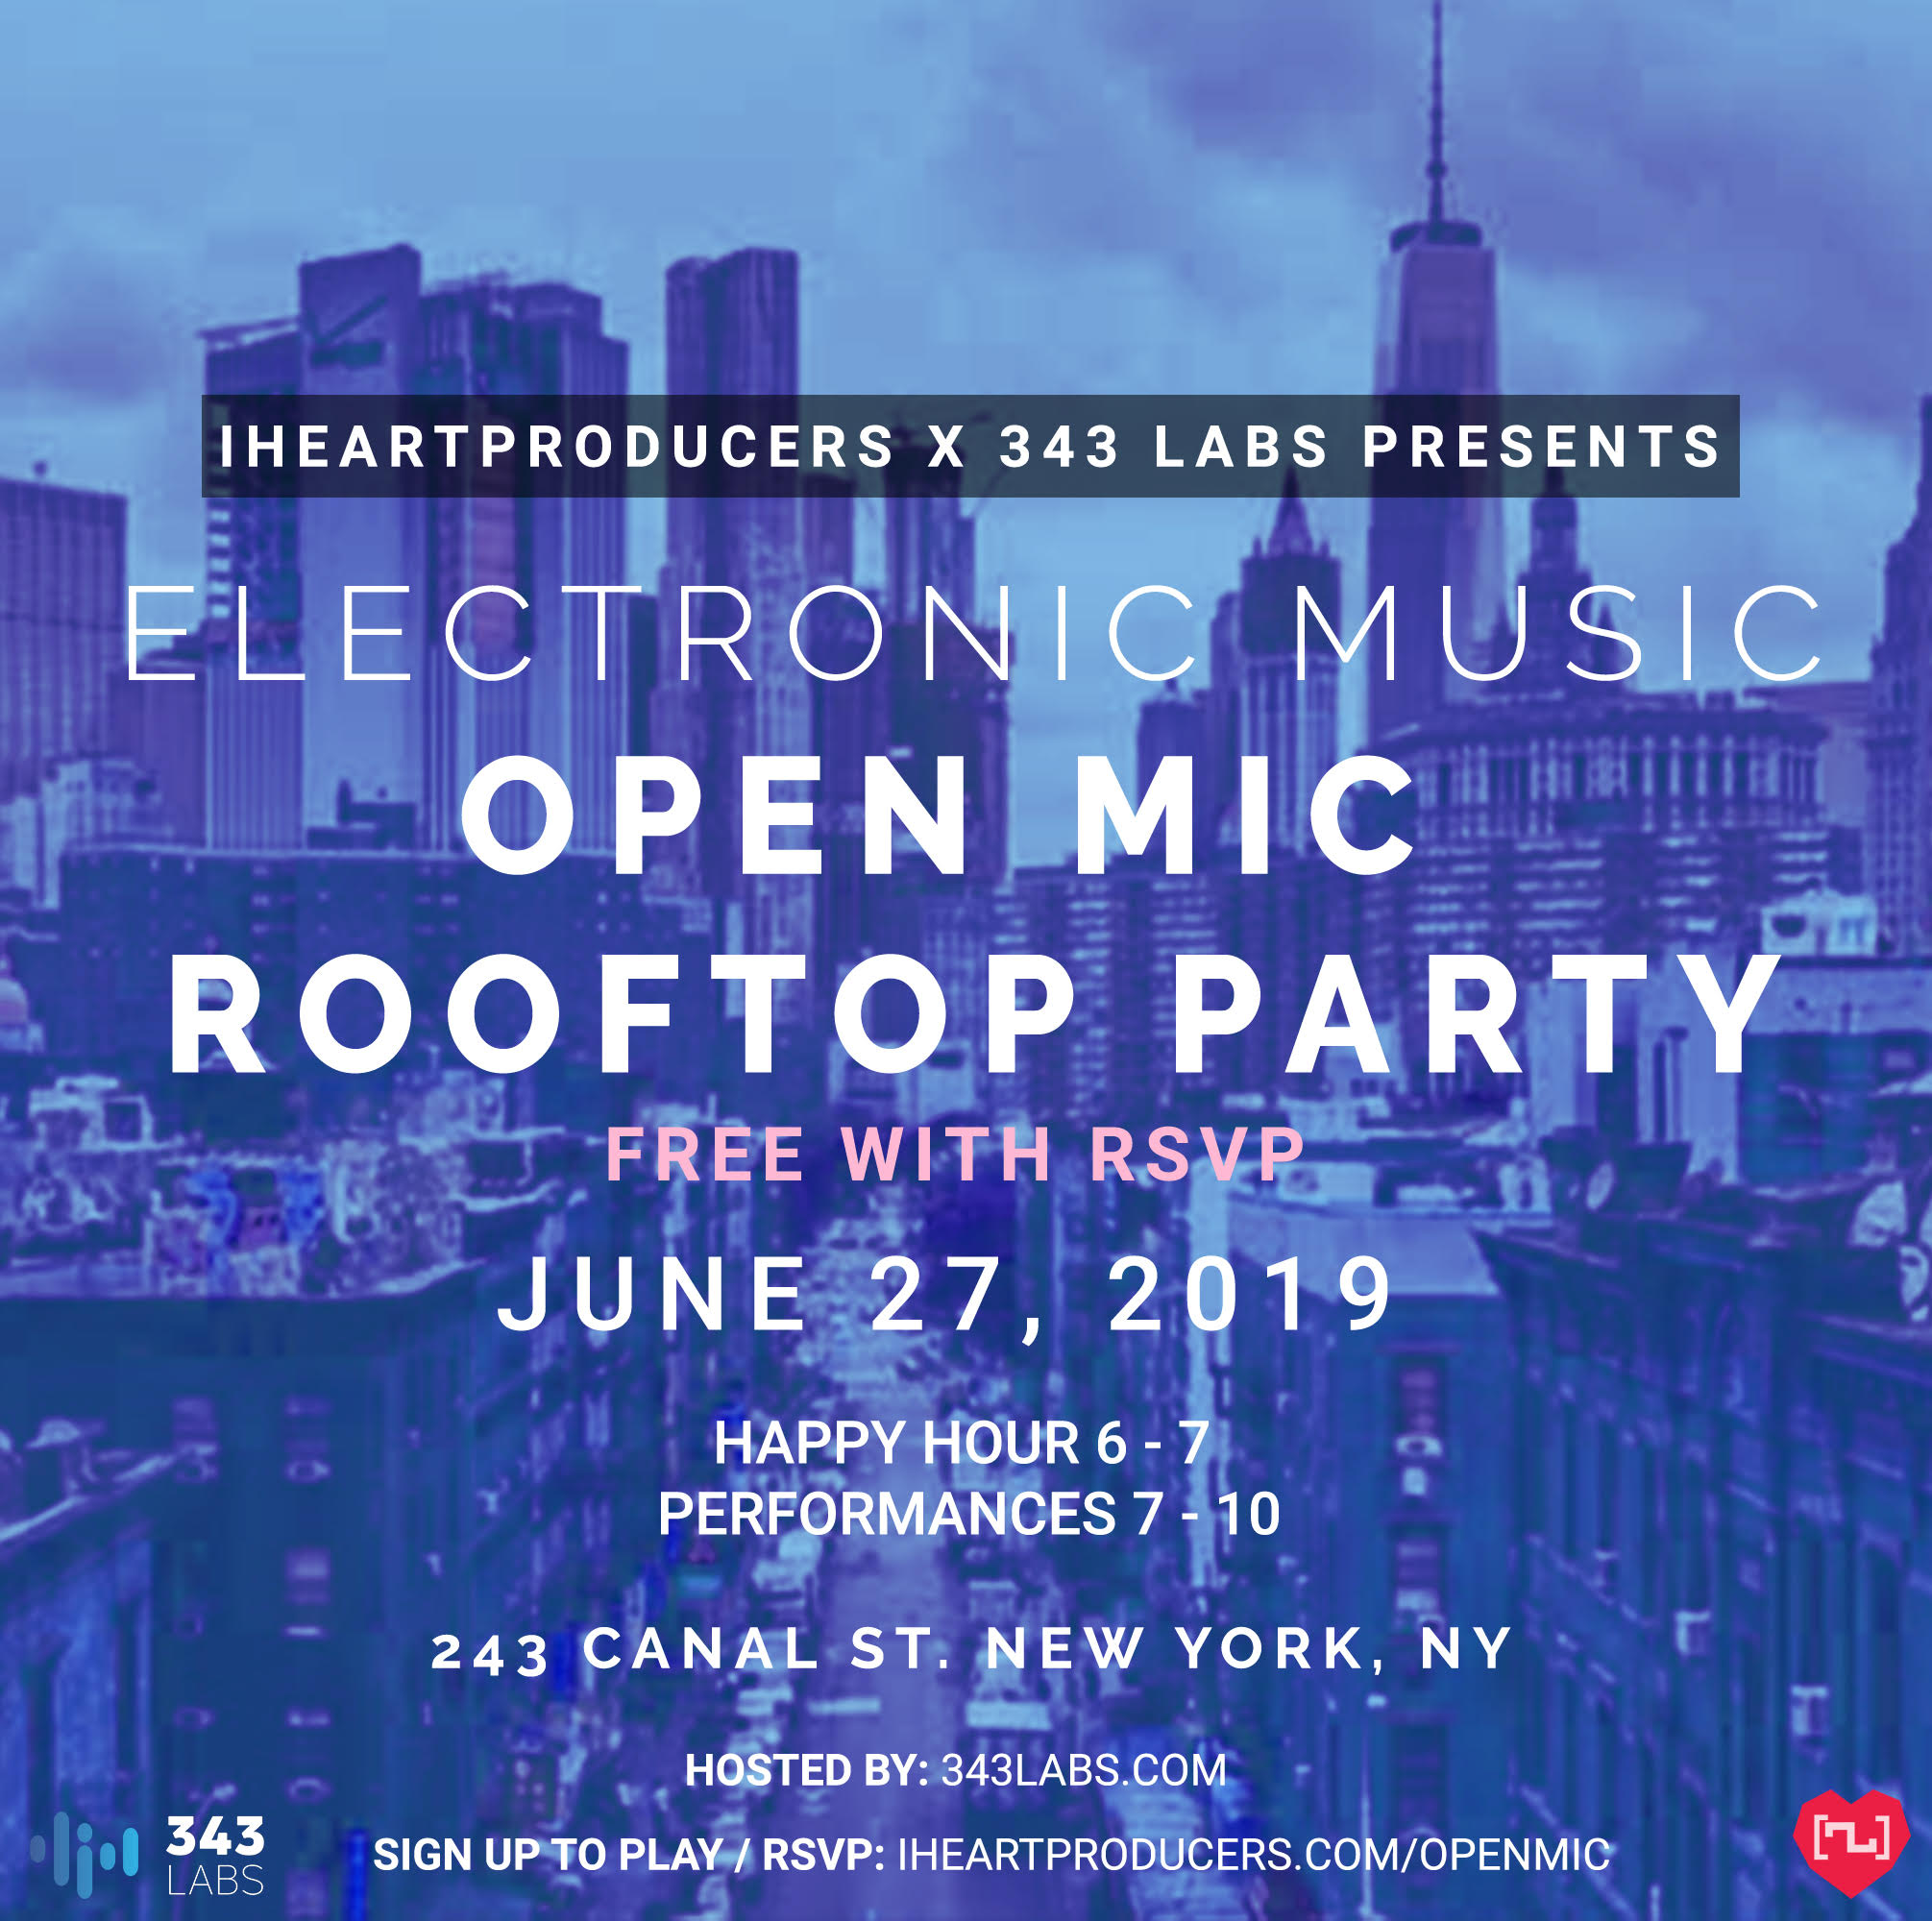 OpenMicRooftopParty - June 27, 2019